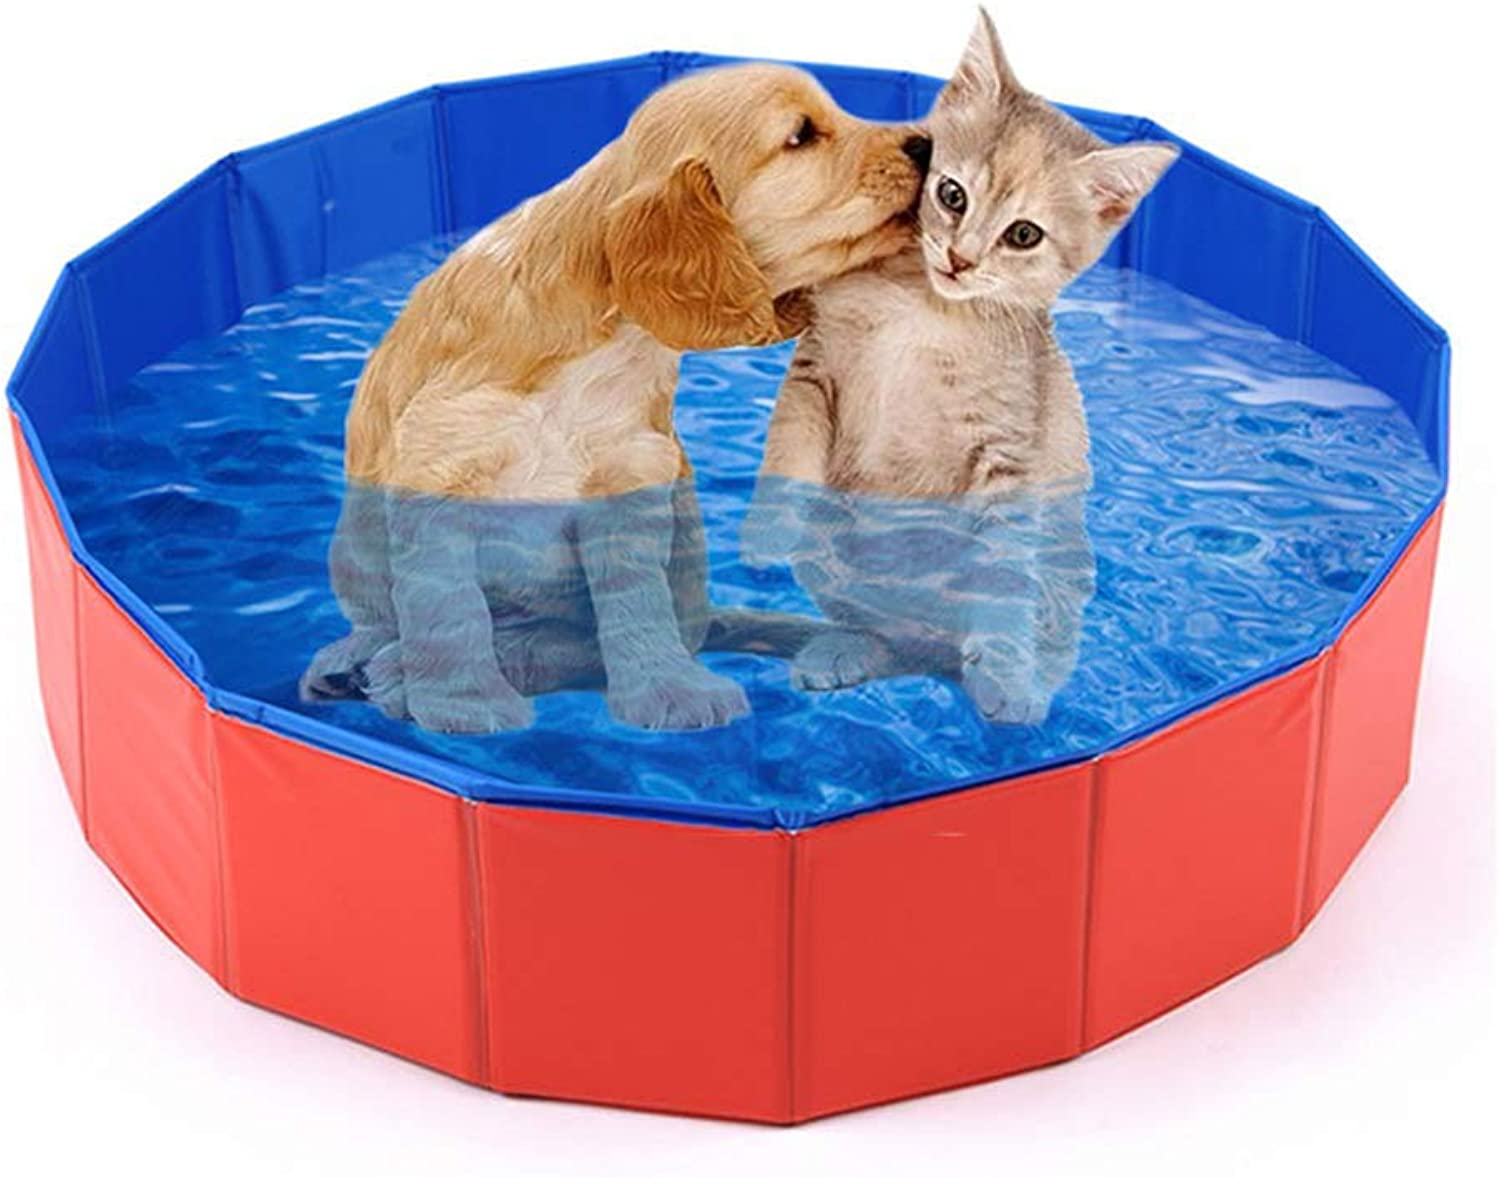 JYY Foldable Dog Pool,Collapsible Pet Spa Box Pet Swimming Pool Water Pond Outdoor Indoor For Small Medium Dogs Cat,M